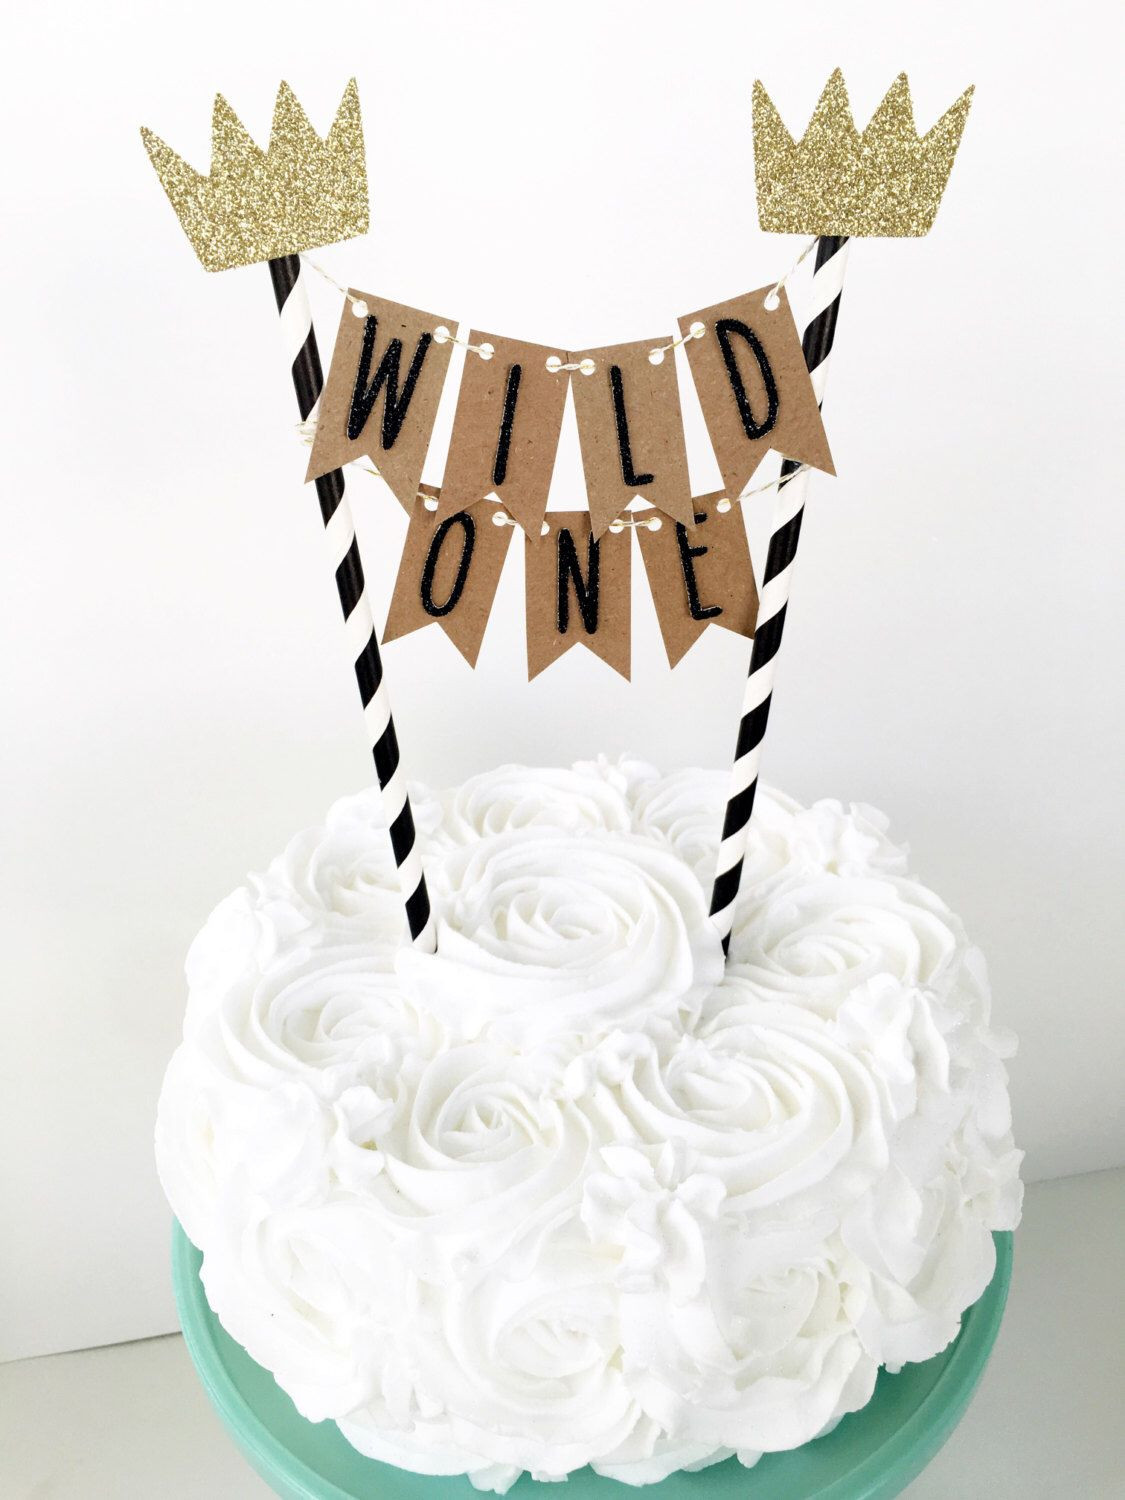 Best ideas about 1st Birthday Cake Topper . Save or Pin Where The Wild Things Are Cake Topper Wild e Cake Now.